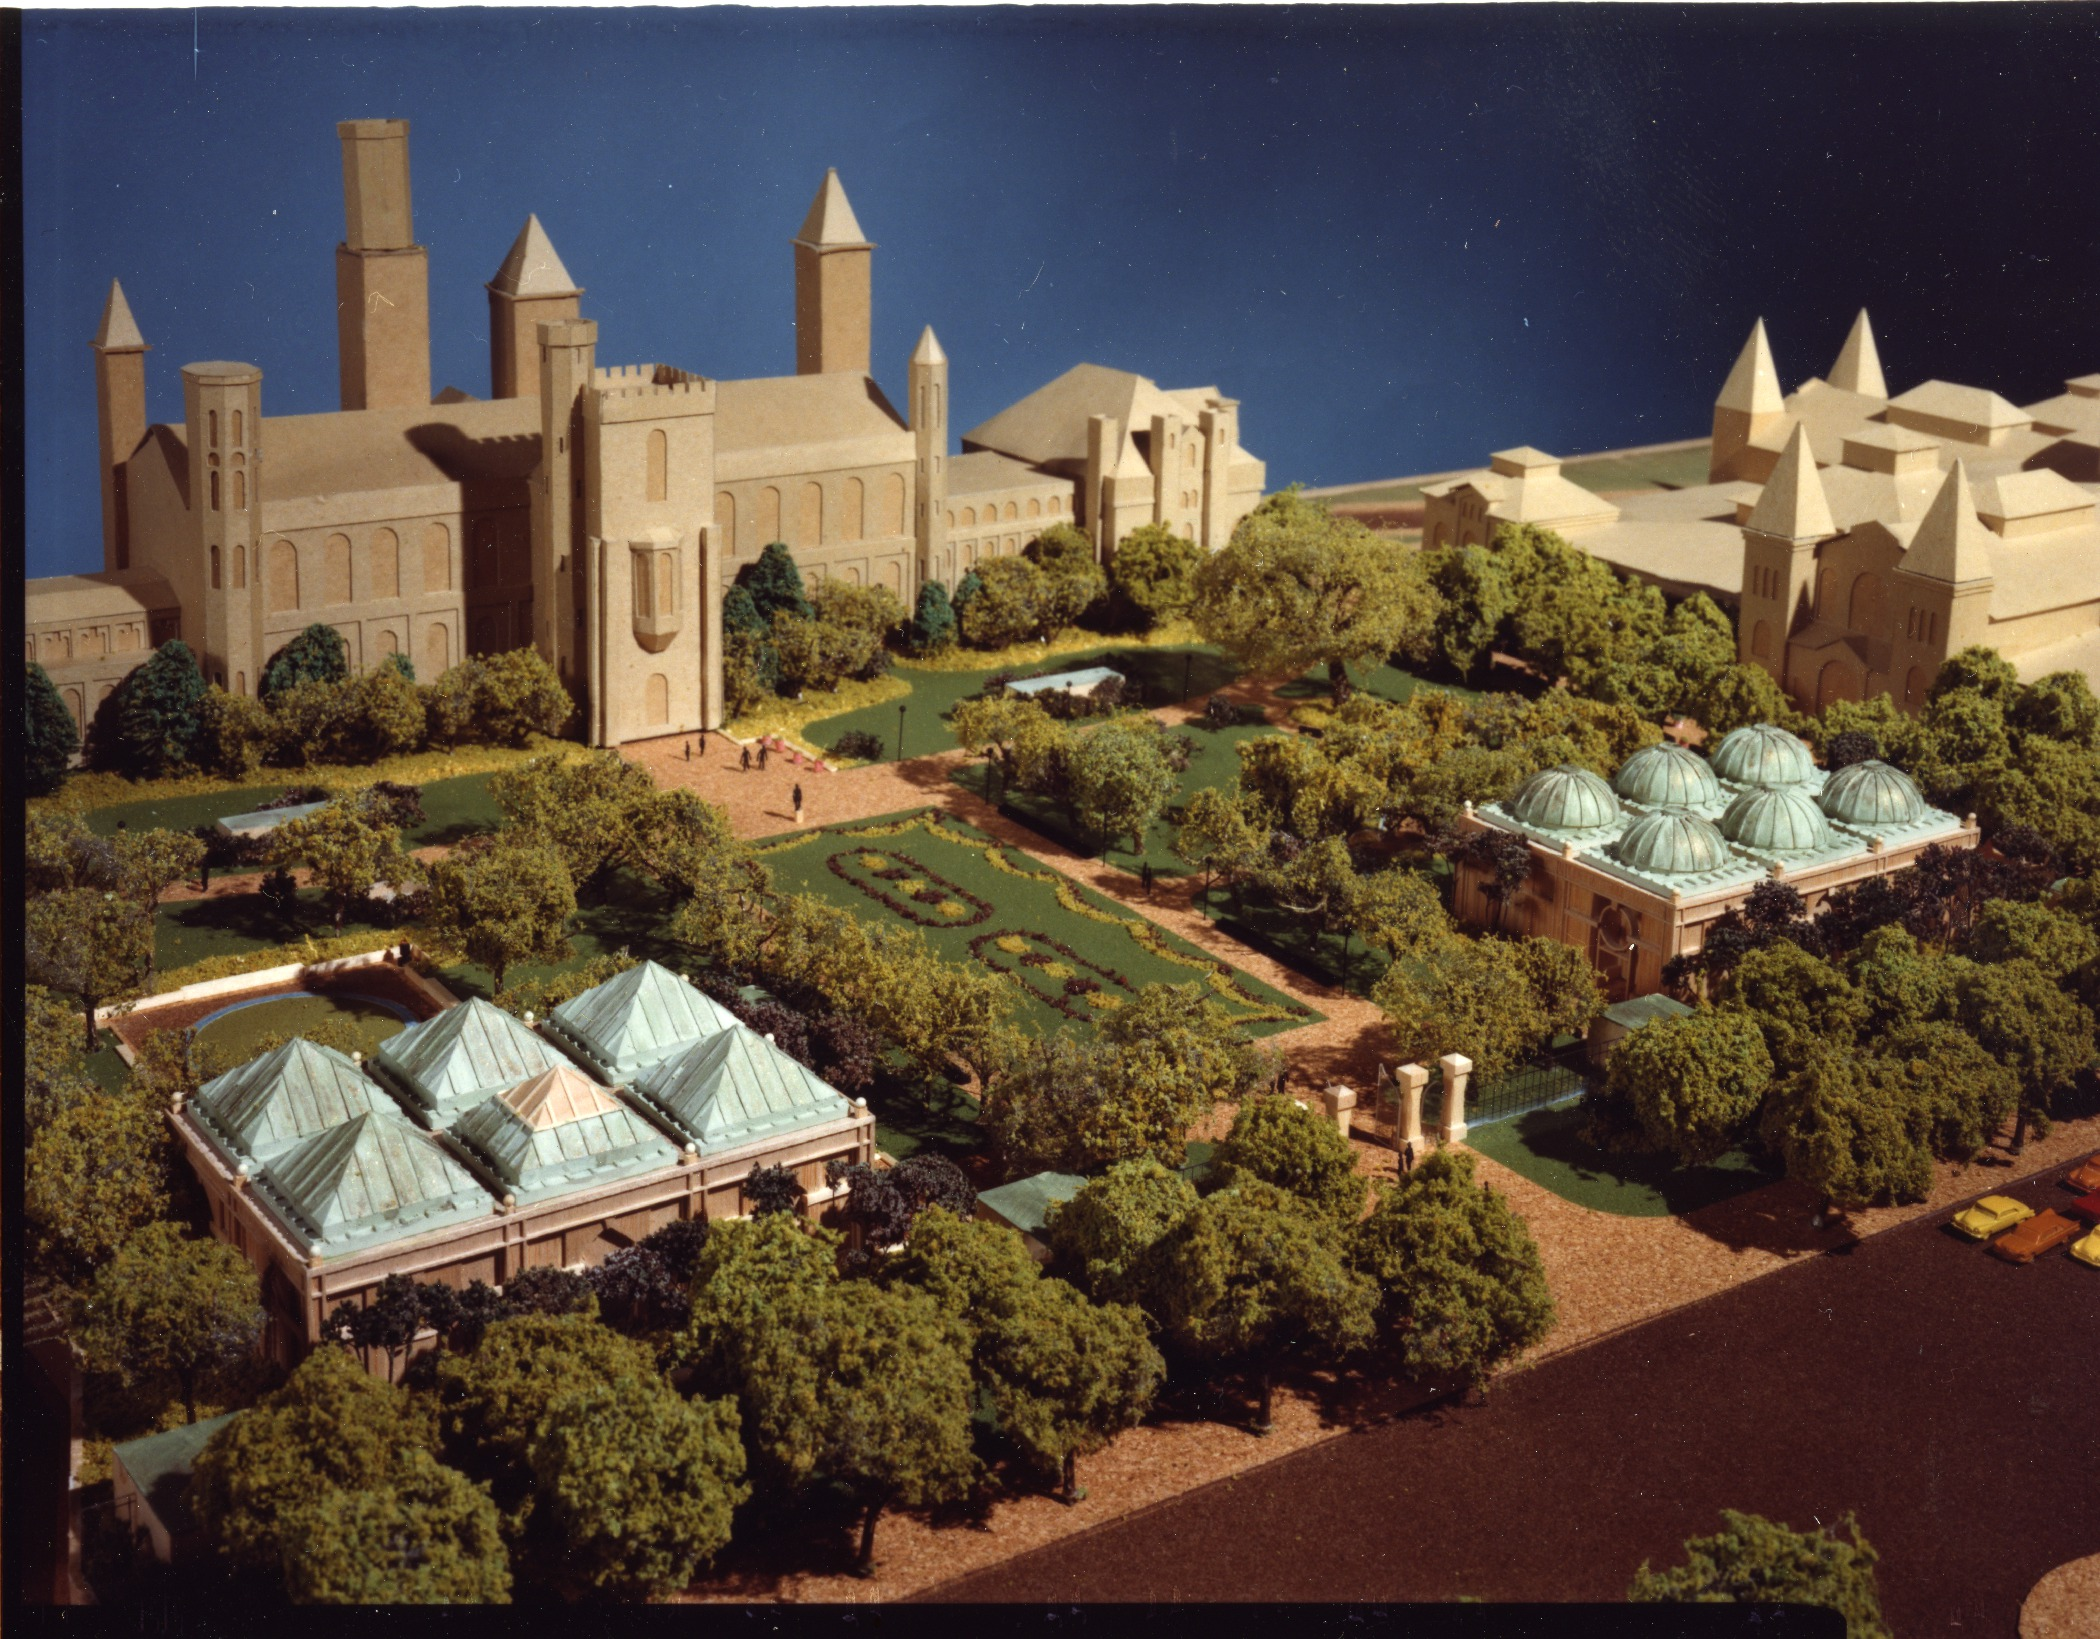 Model of the Quadrangle Viewed from the Southwest, c. 1979.